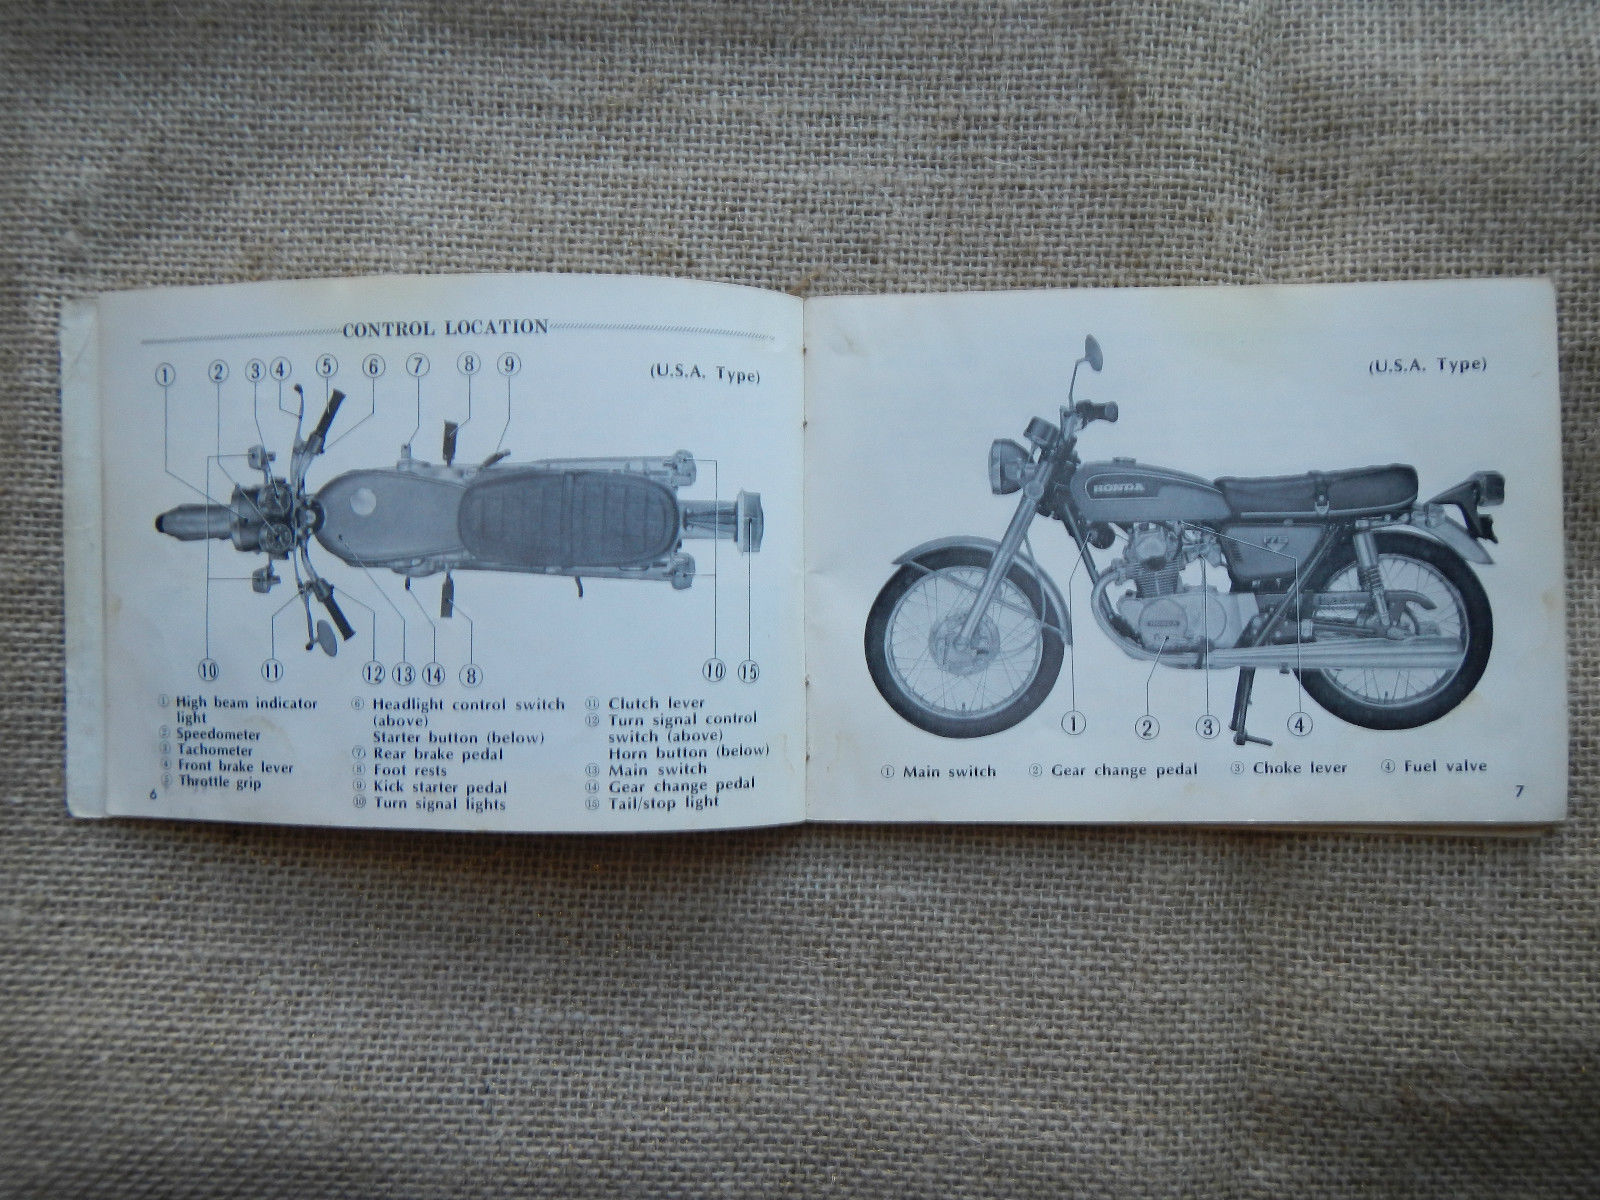 72 Cb175 Wiring Diagram Diagrams Schematics Honda Gl1100 1972 Cb 175 K6 K 6 Owner And 50 Similar Items Owners Manual